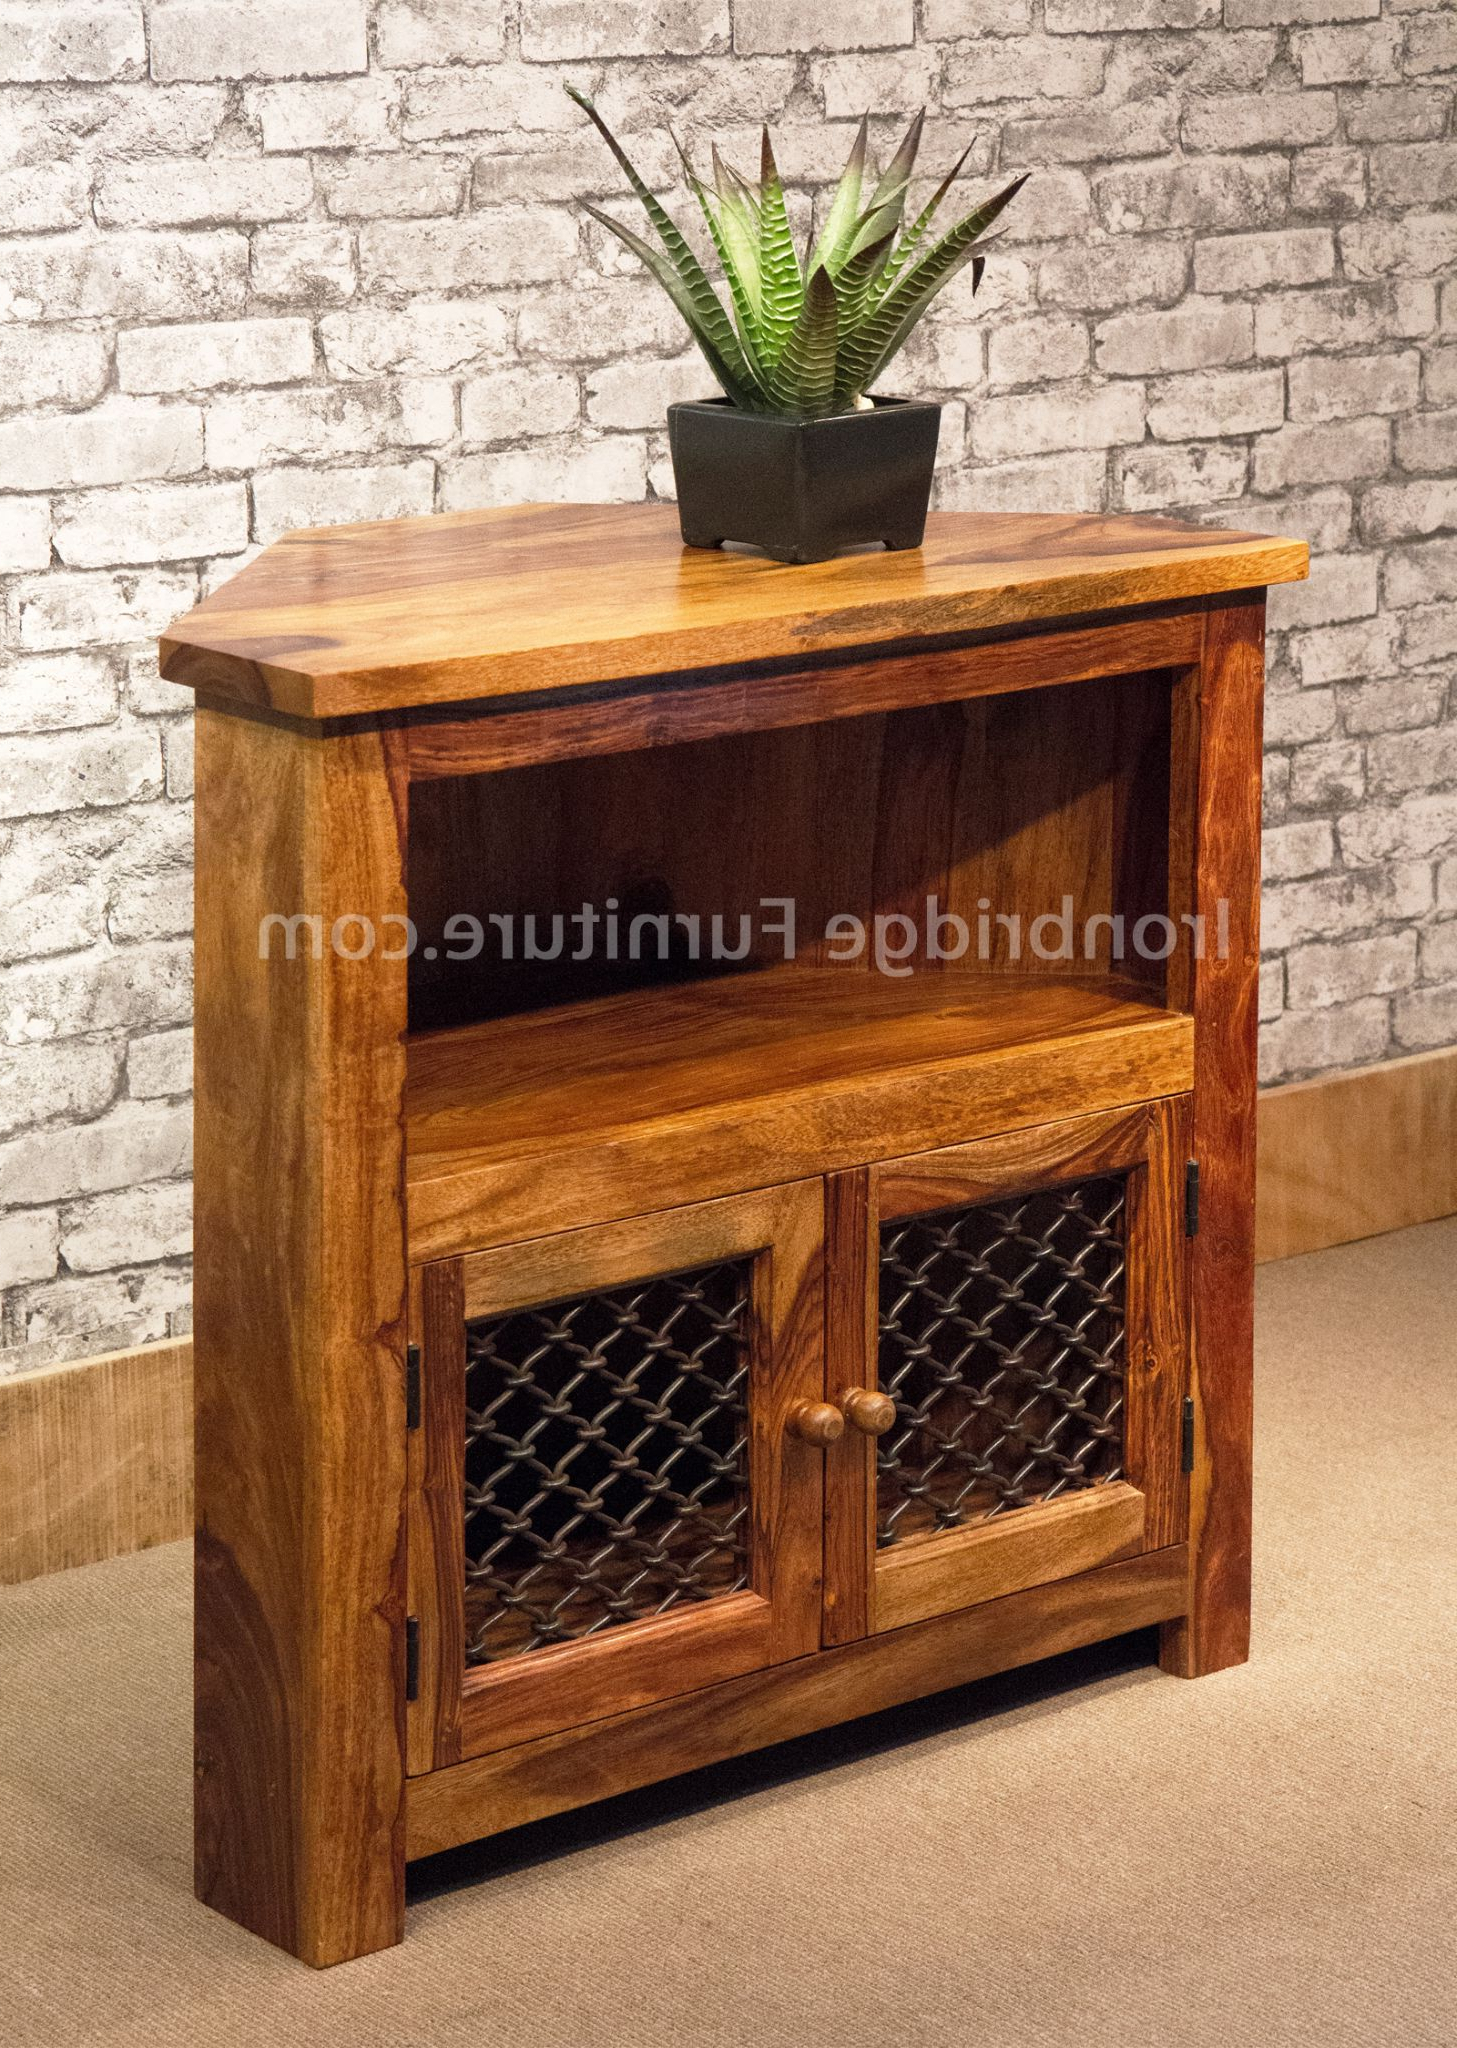 Preferred Ibf 032 Tall Corner Tv Stand 79Cm Wide – Only 1 Left With Regard To Tall Tv Cabinets Corner Unit (Gallery 8 of 20)